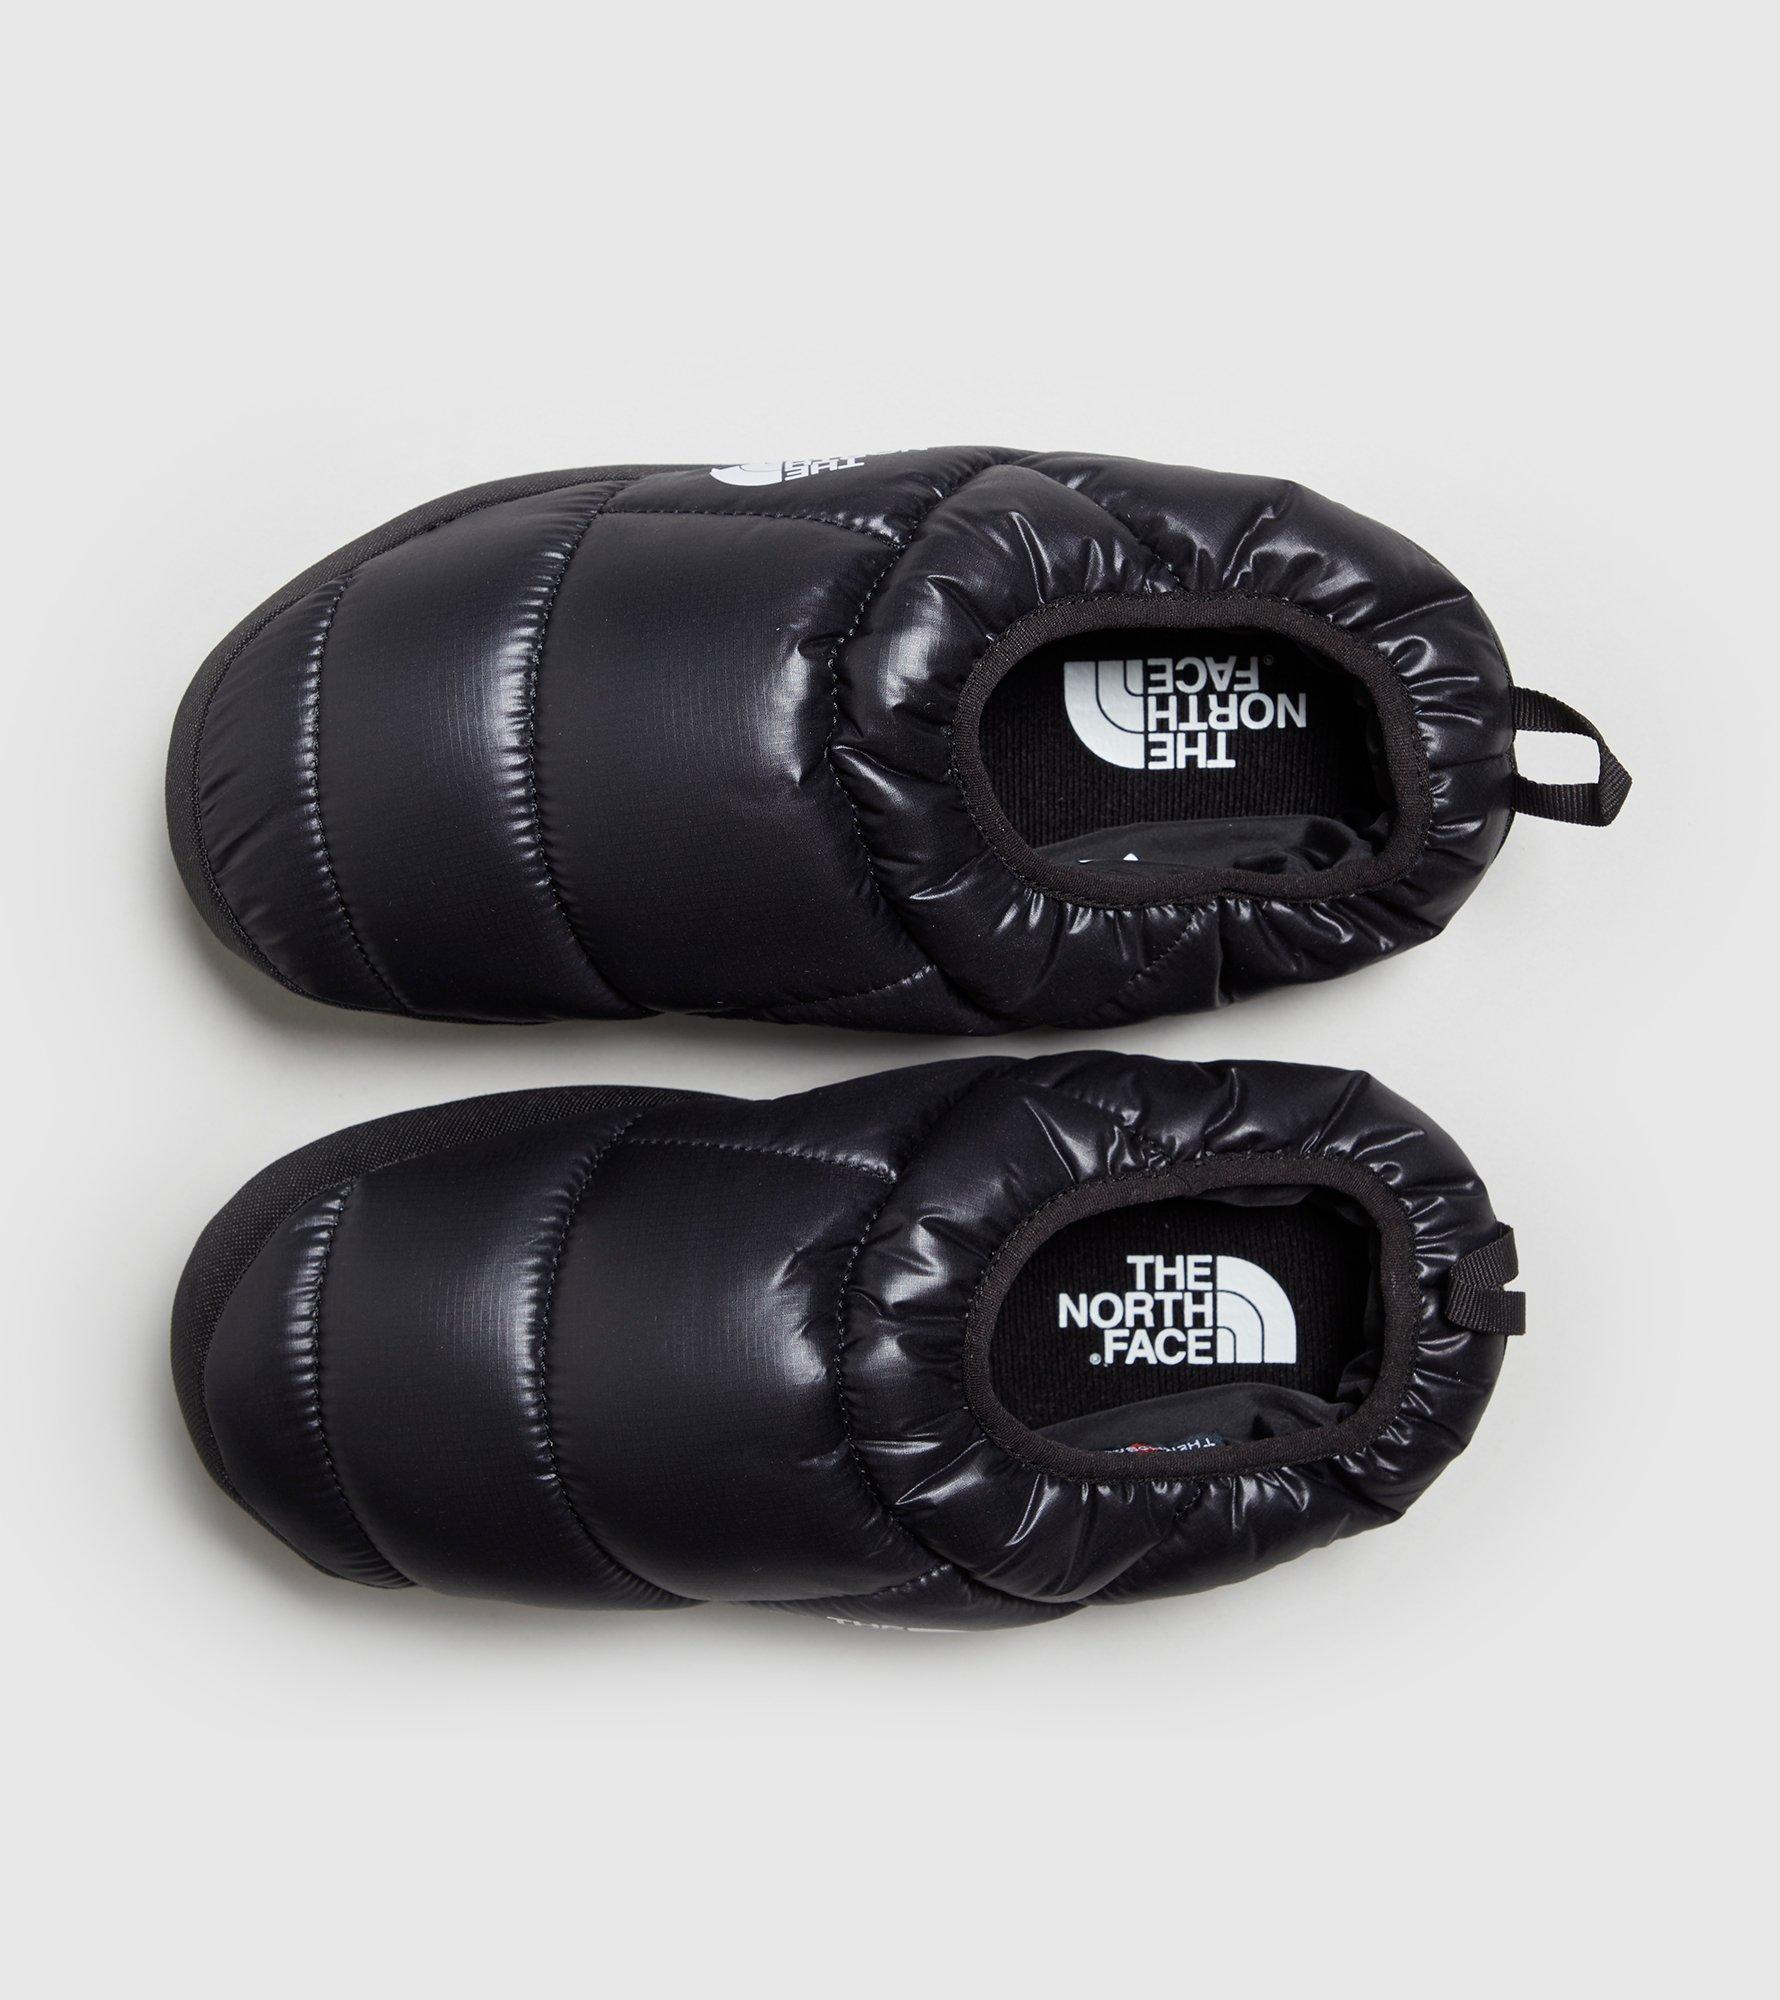 The North Face Tent Mule & The North Face Tent Mule | Size?